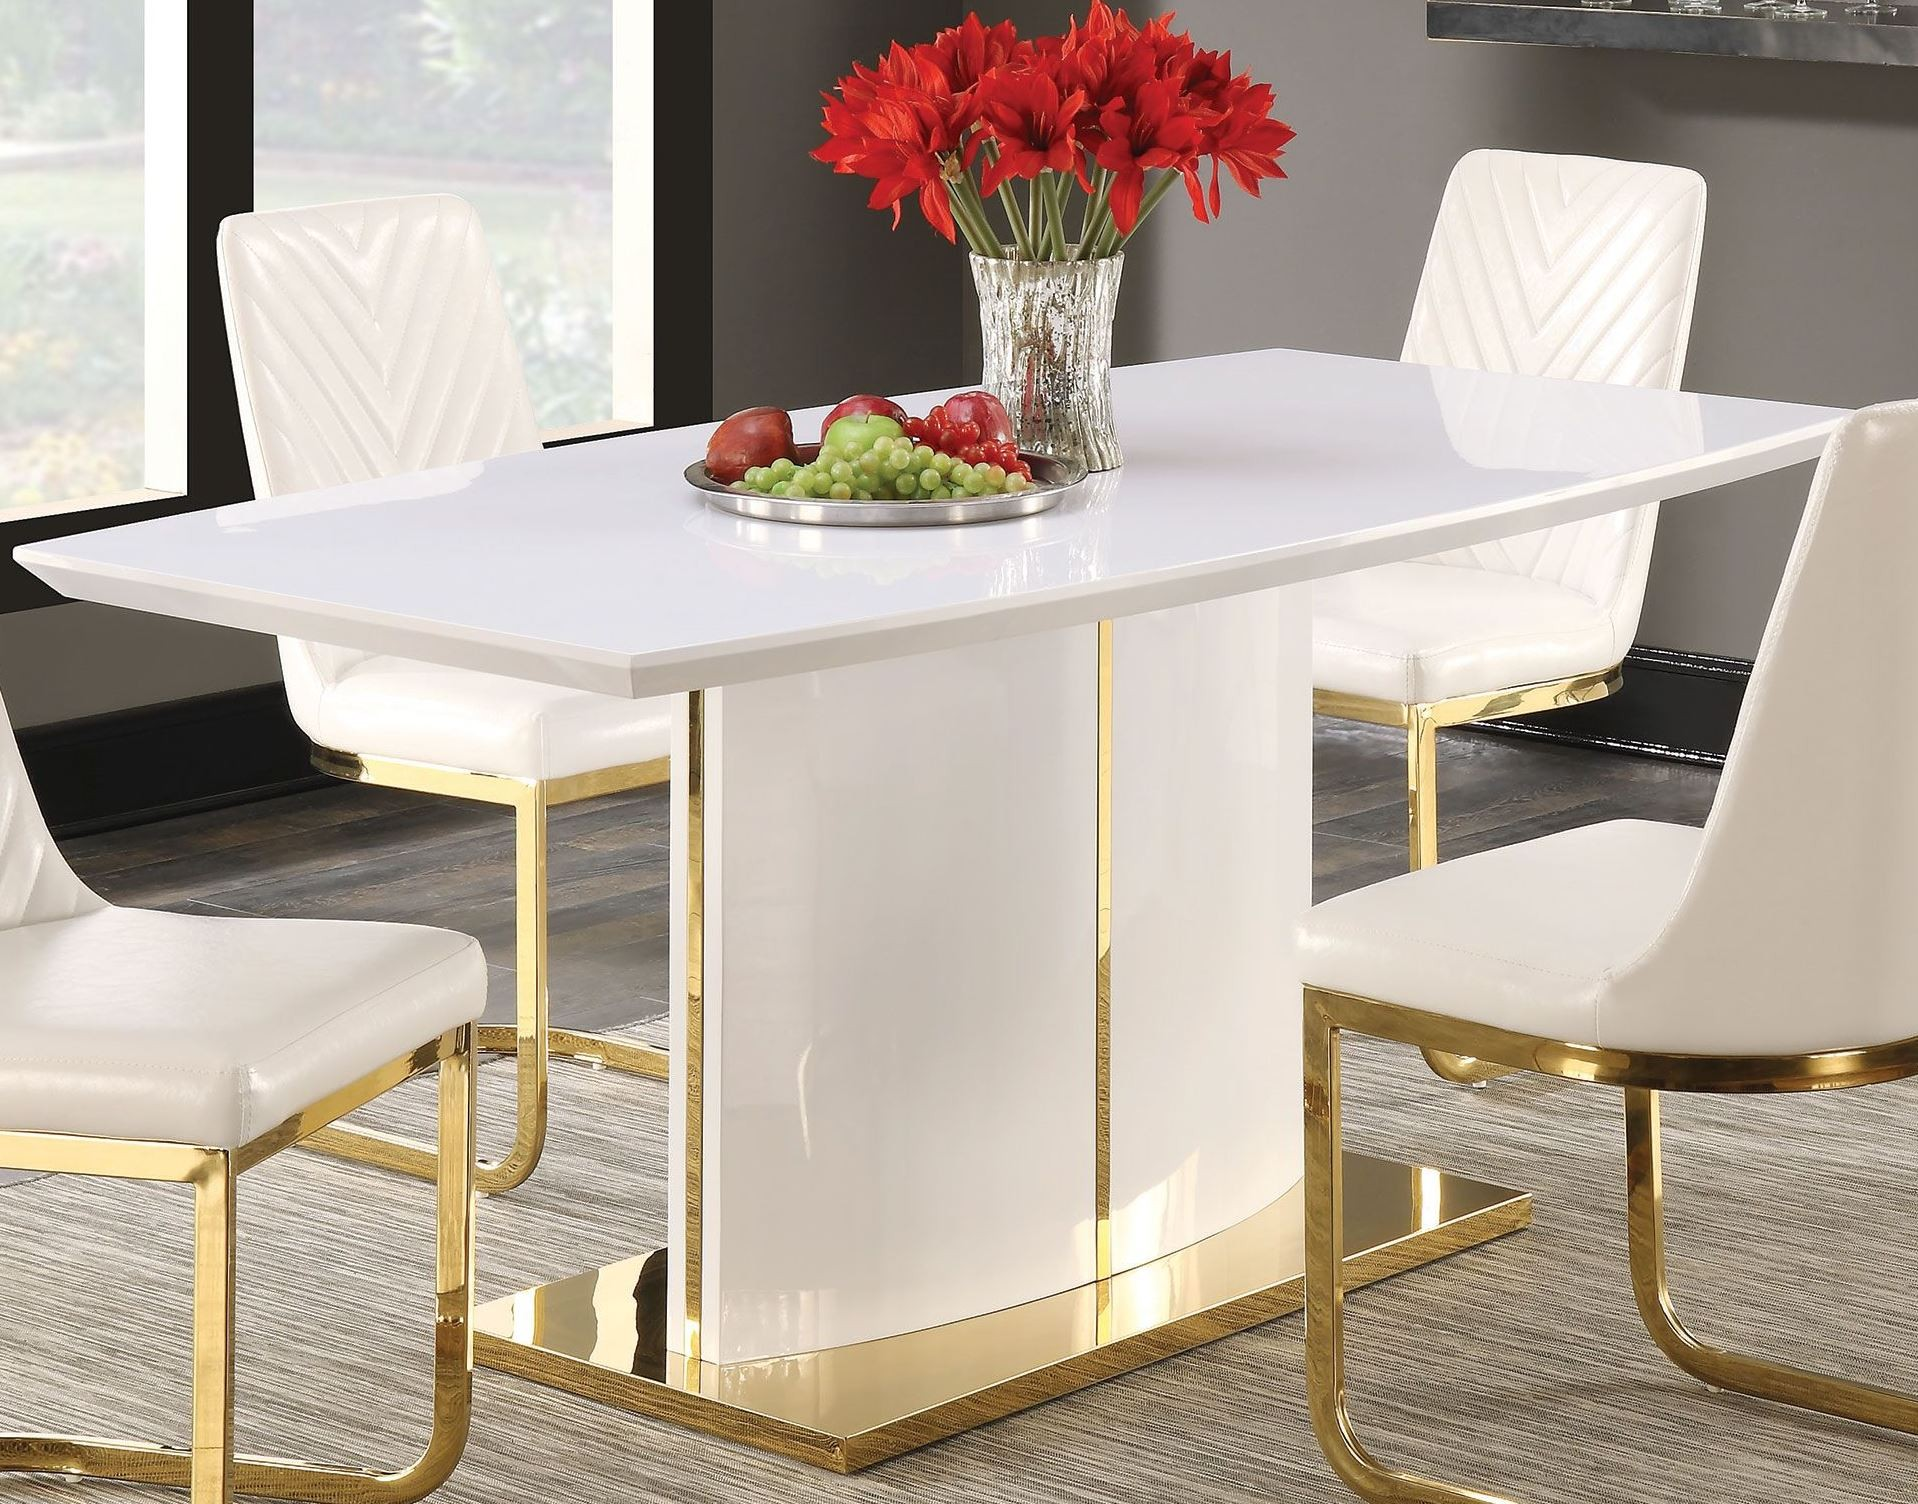 D313 Modern Dining Room Set In White Lacquer Finish: Cornelia High Gloss White Dining Table From Coaster